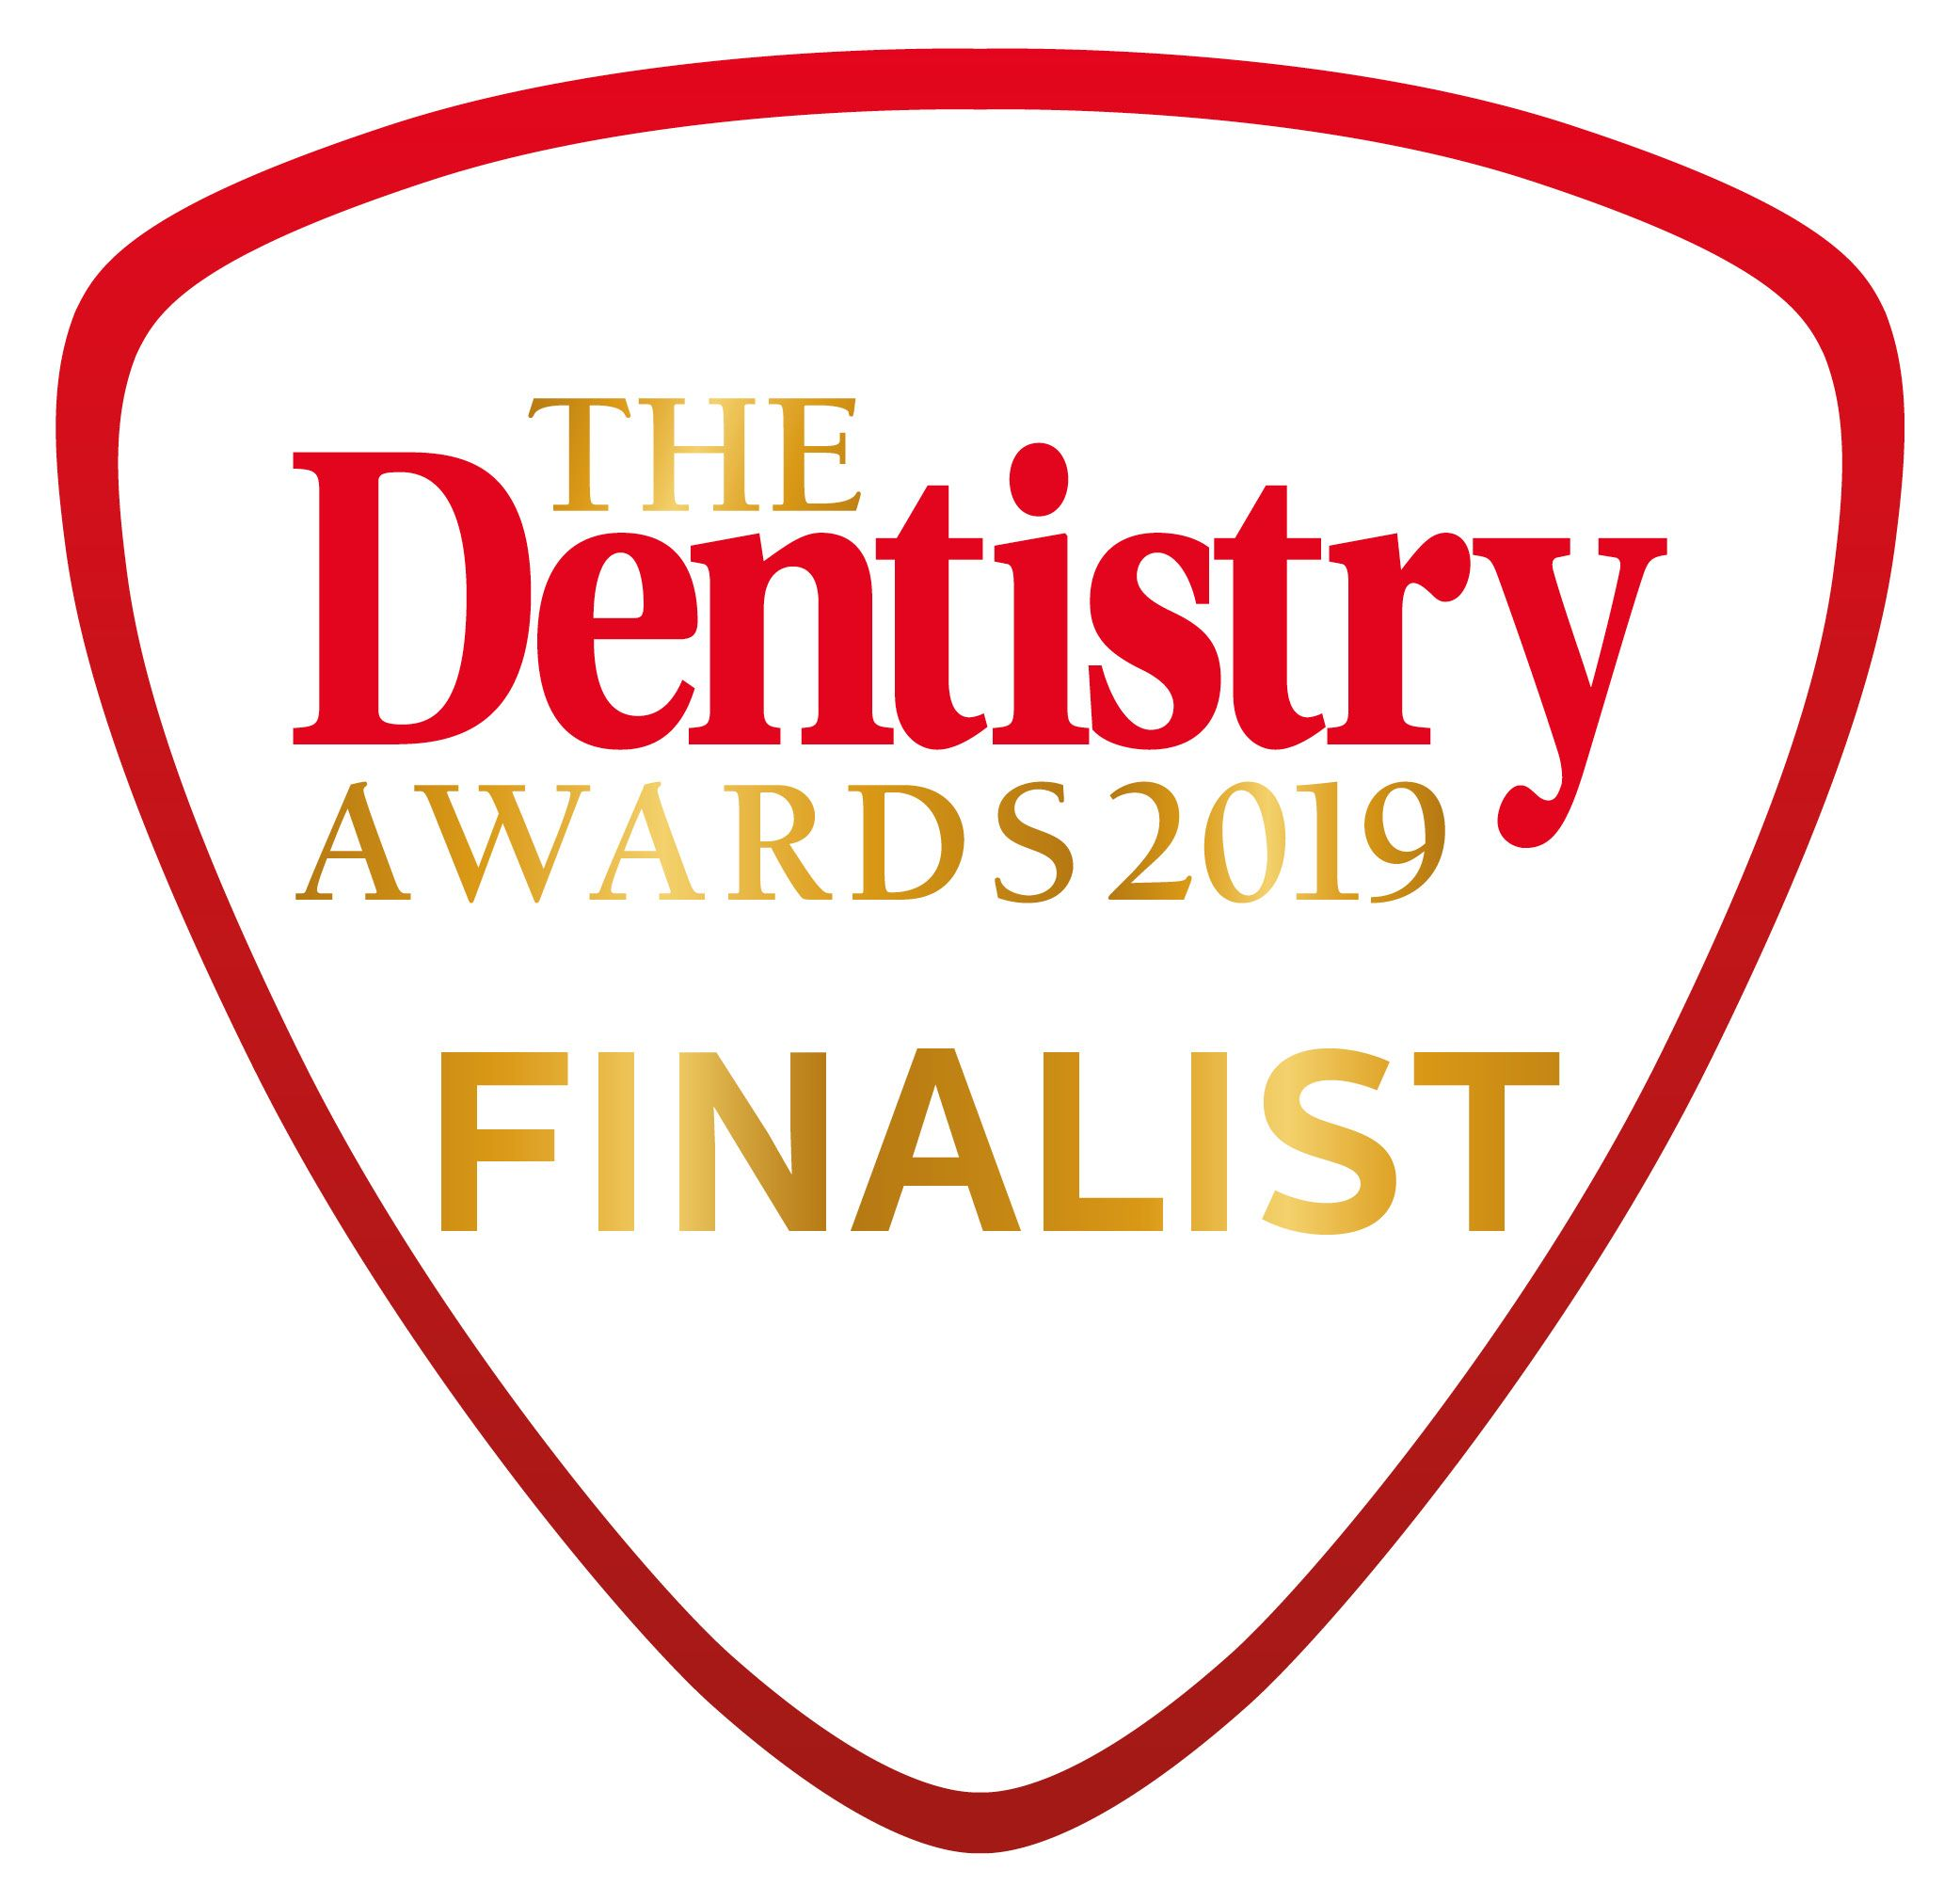 Pin by Queens Park on Our practice Dentistry, Dental